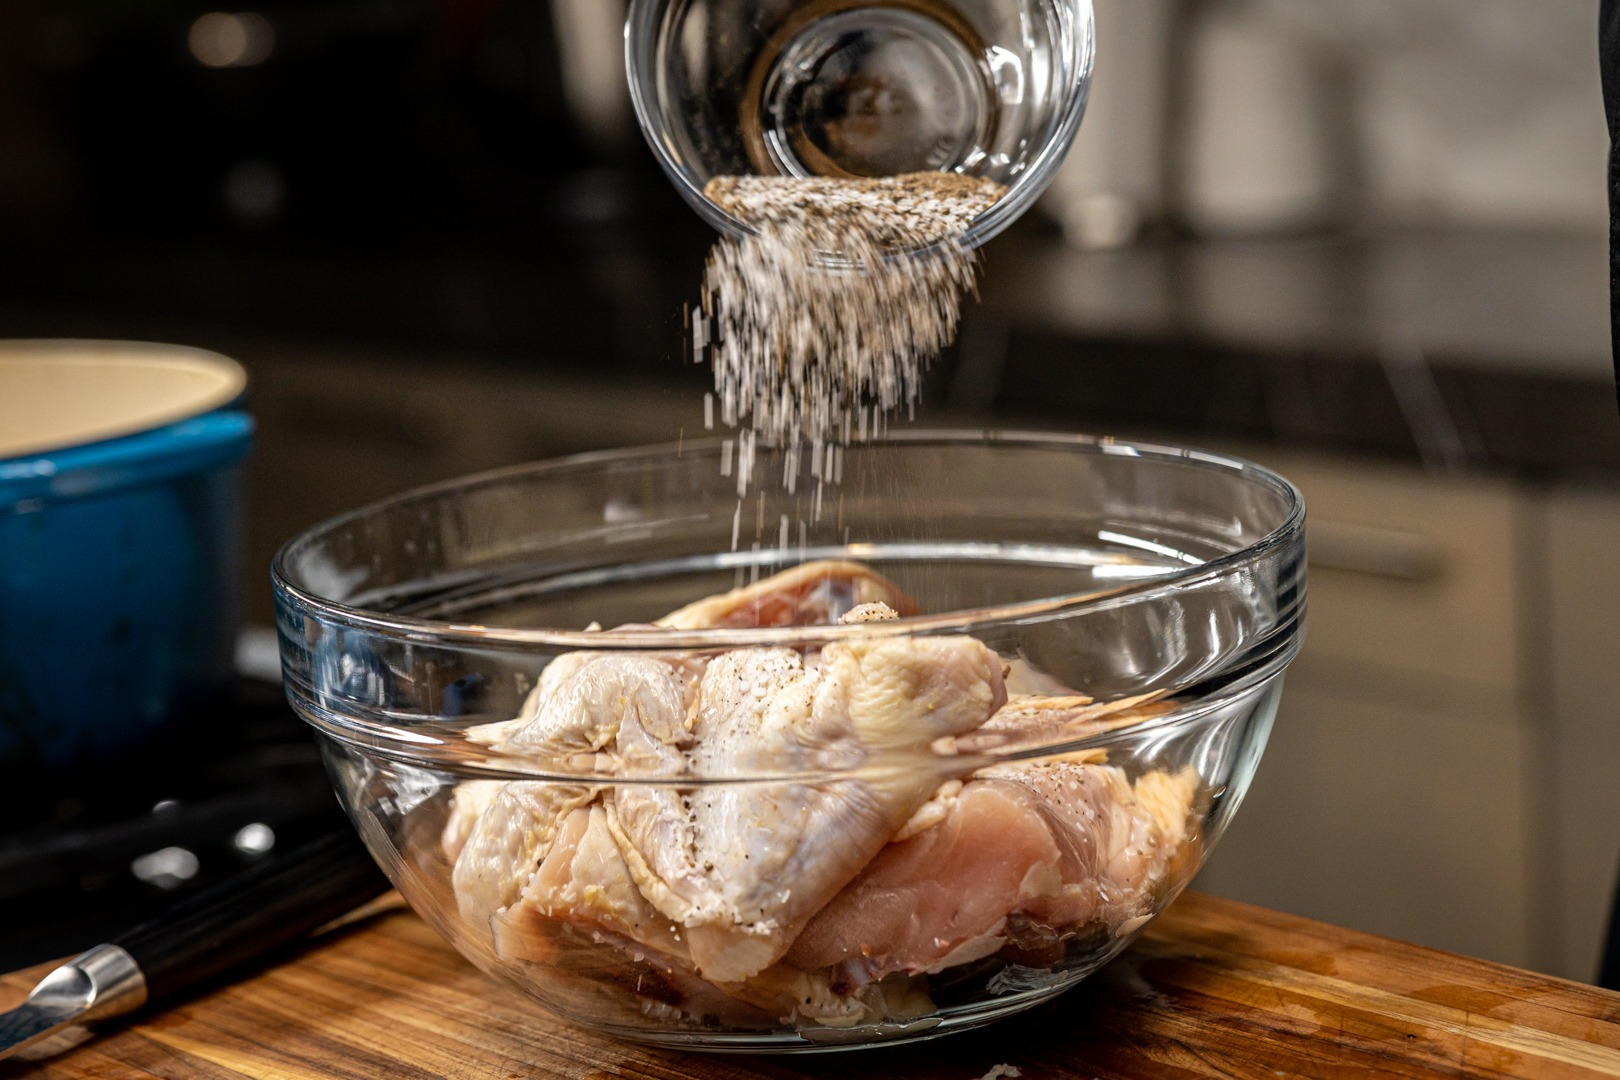 Salting and peppering the chicken